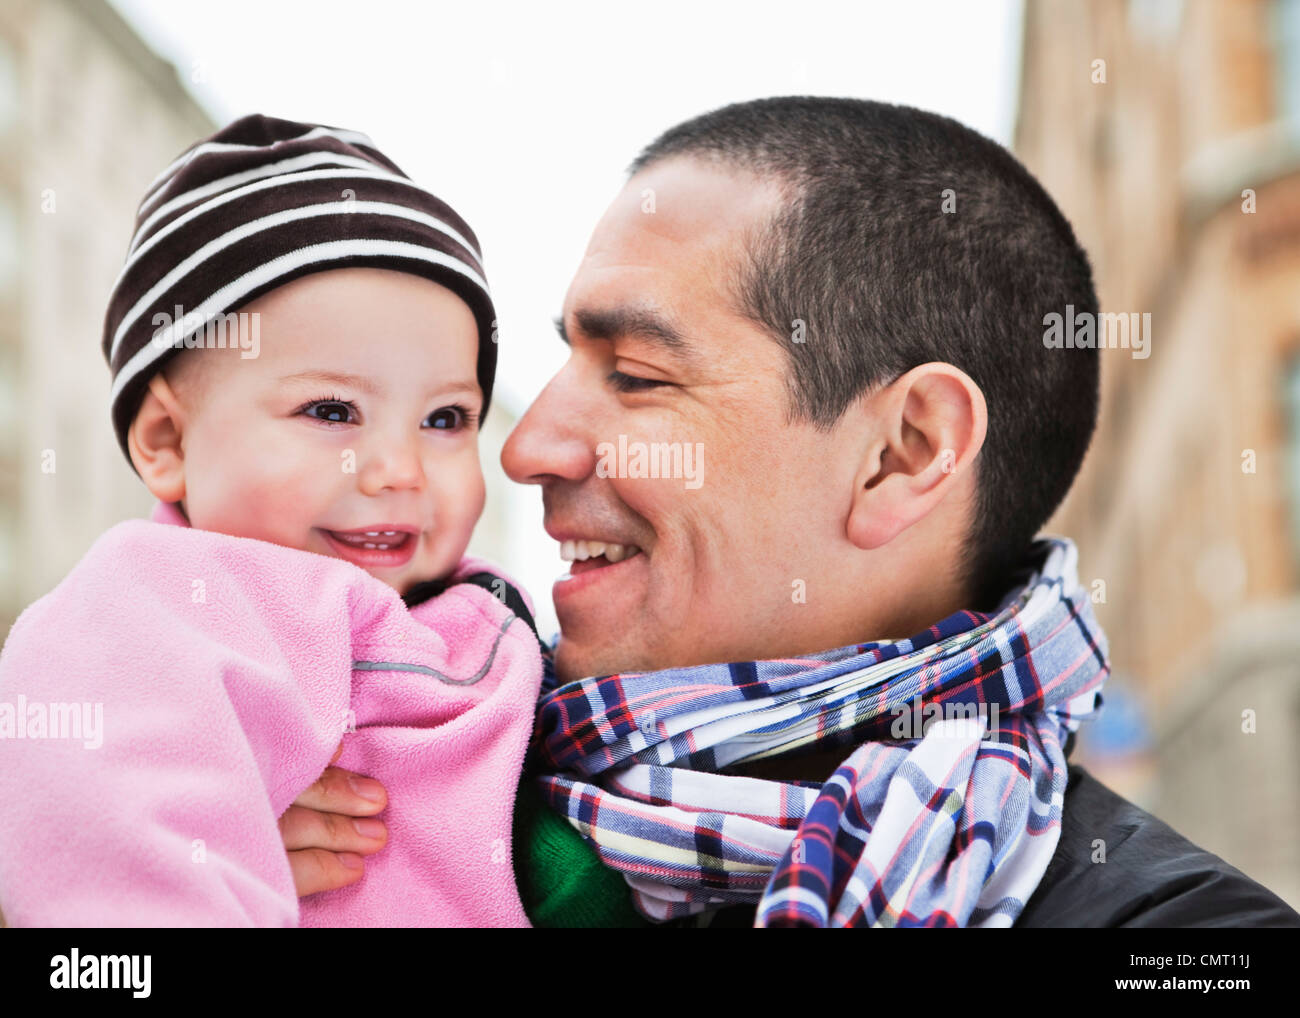 Close-up of father and daughter (0-11 months) smiling - Stock Image